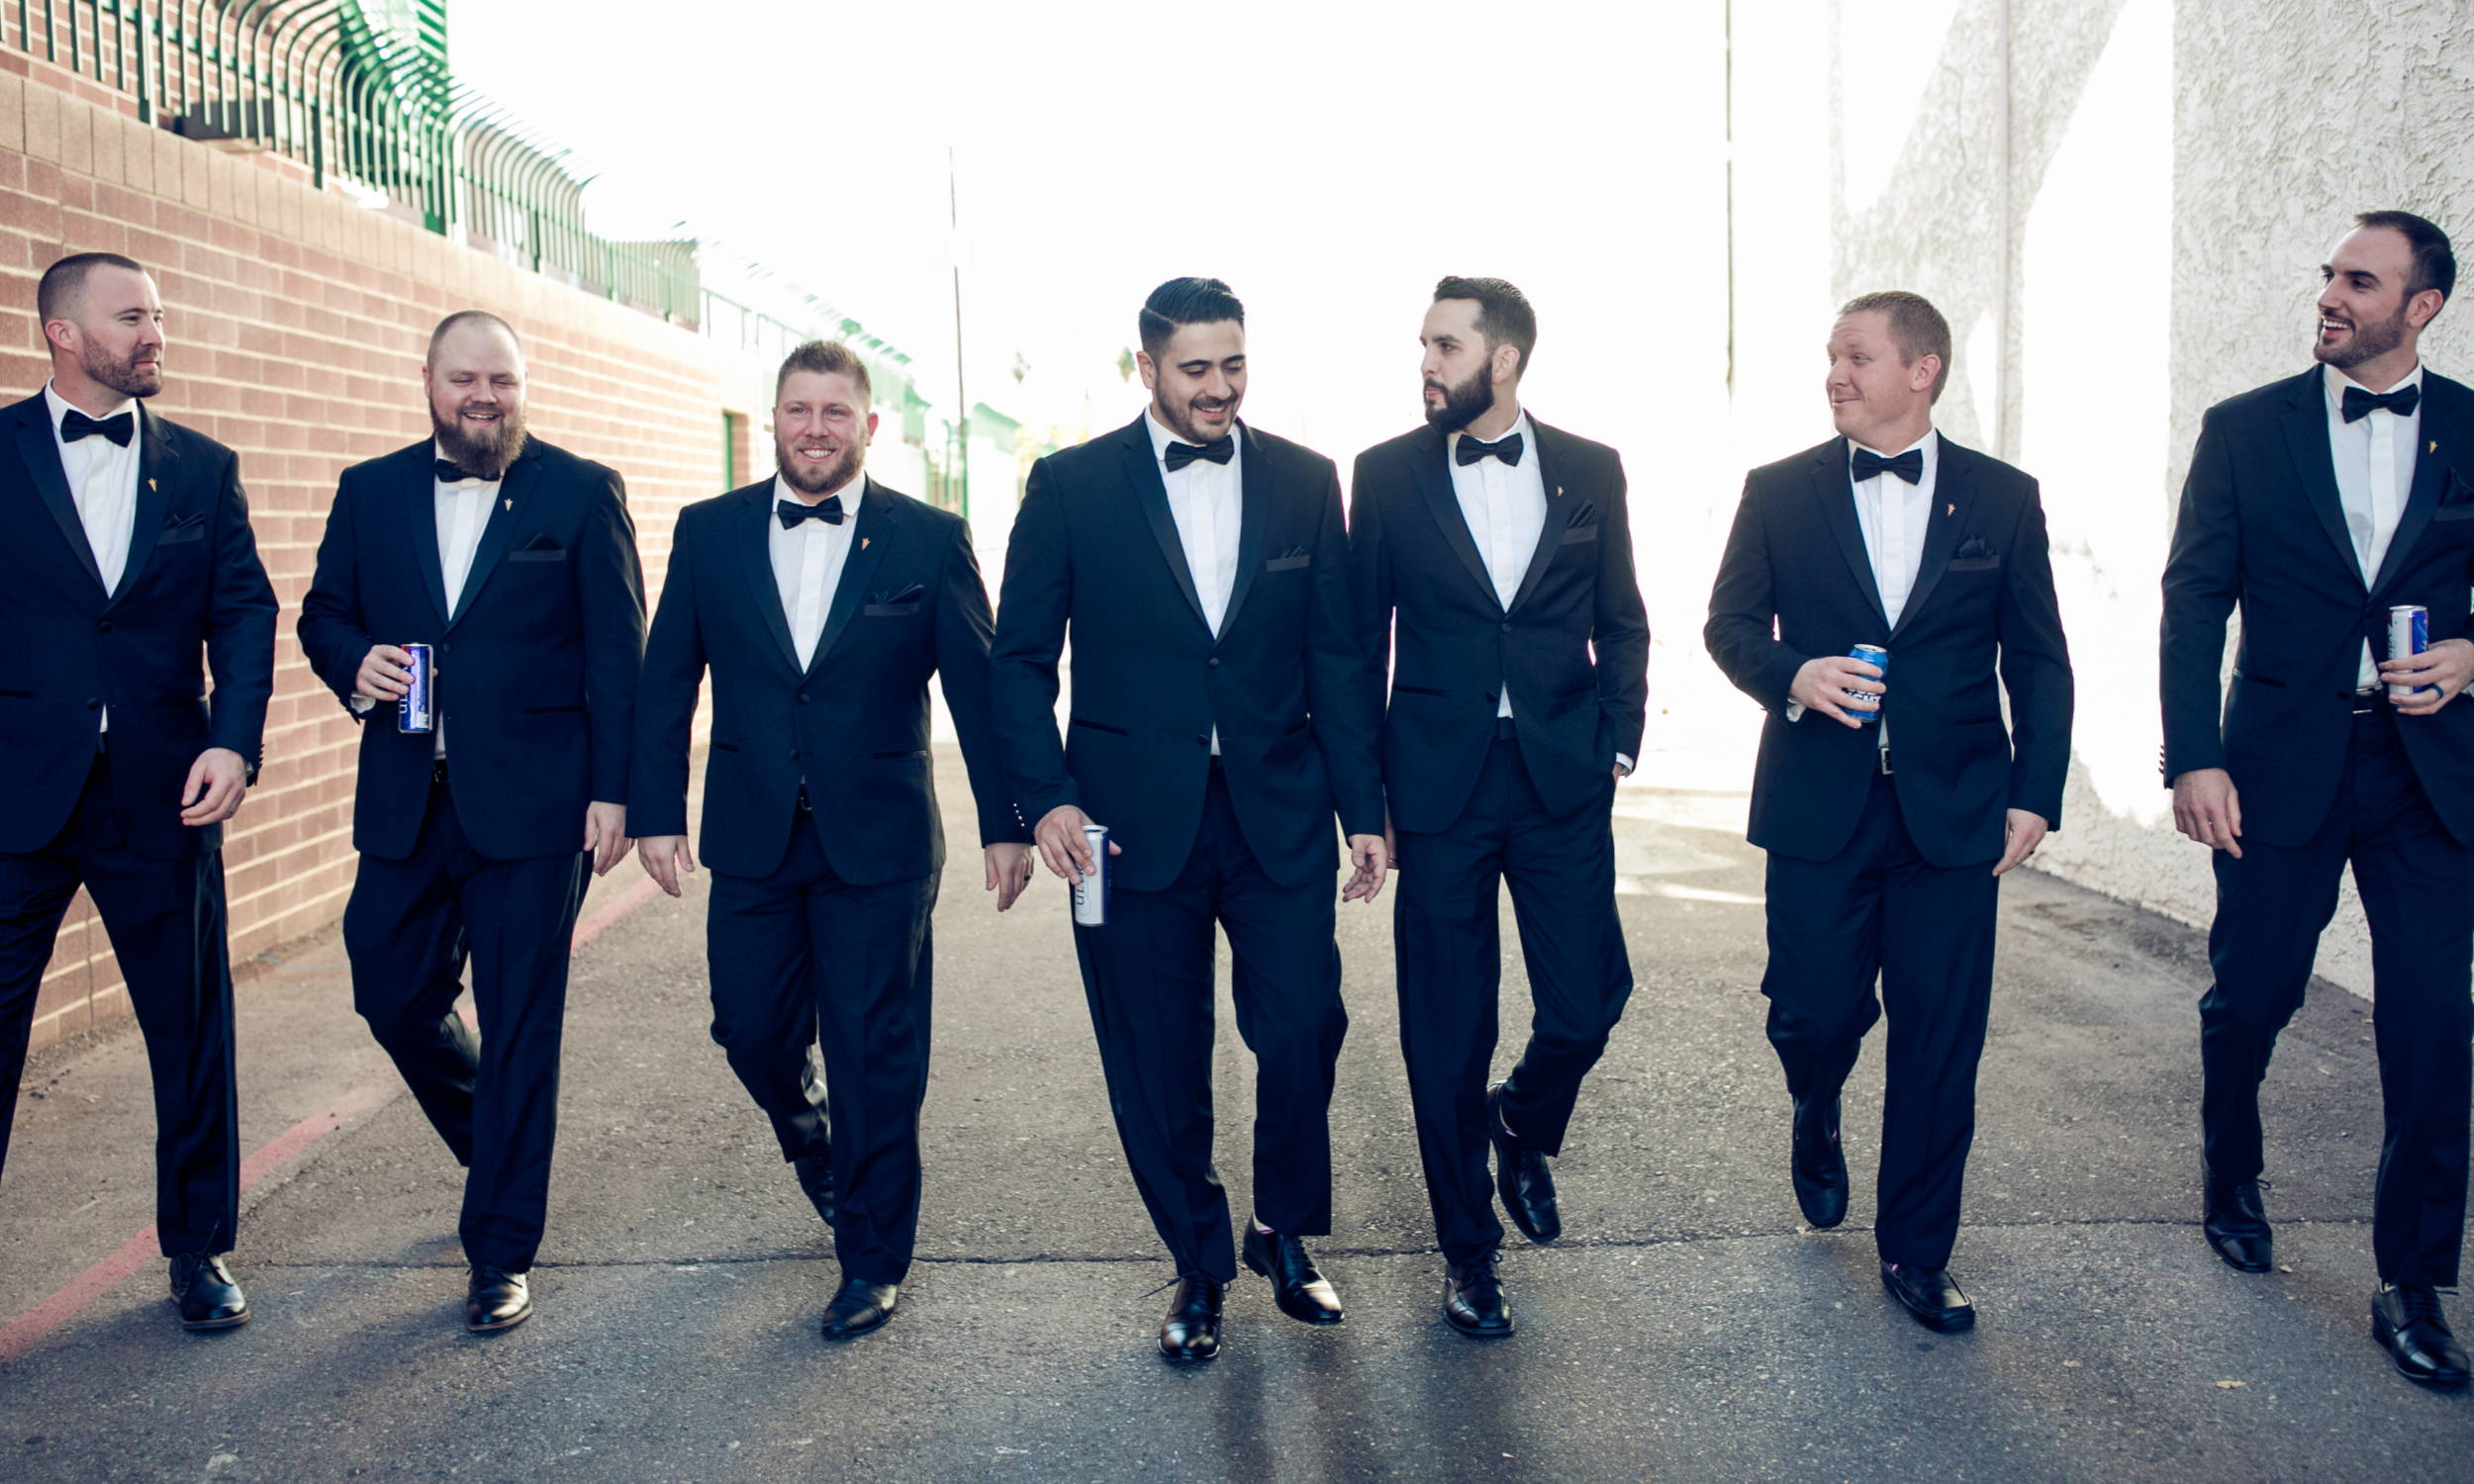 Groom and Groomsmen Attire Guide